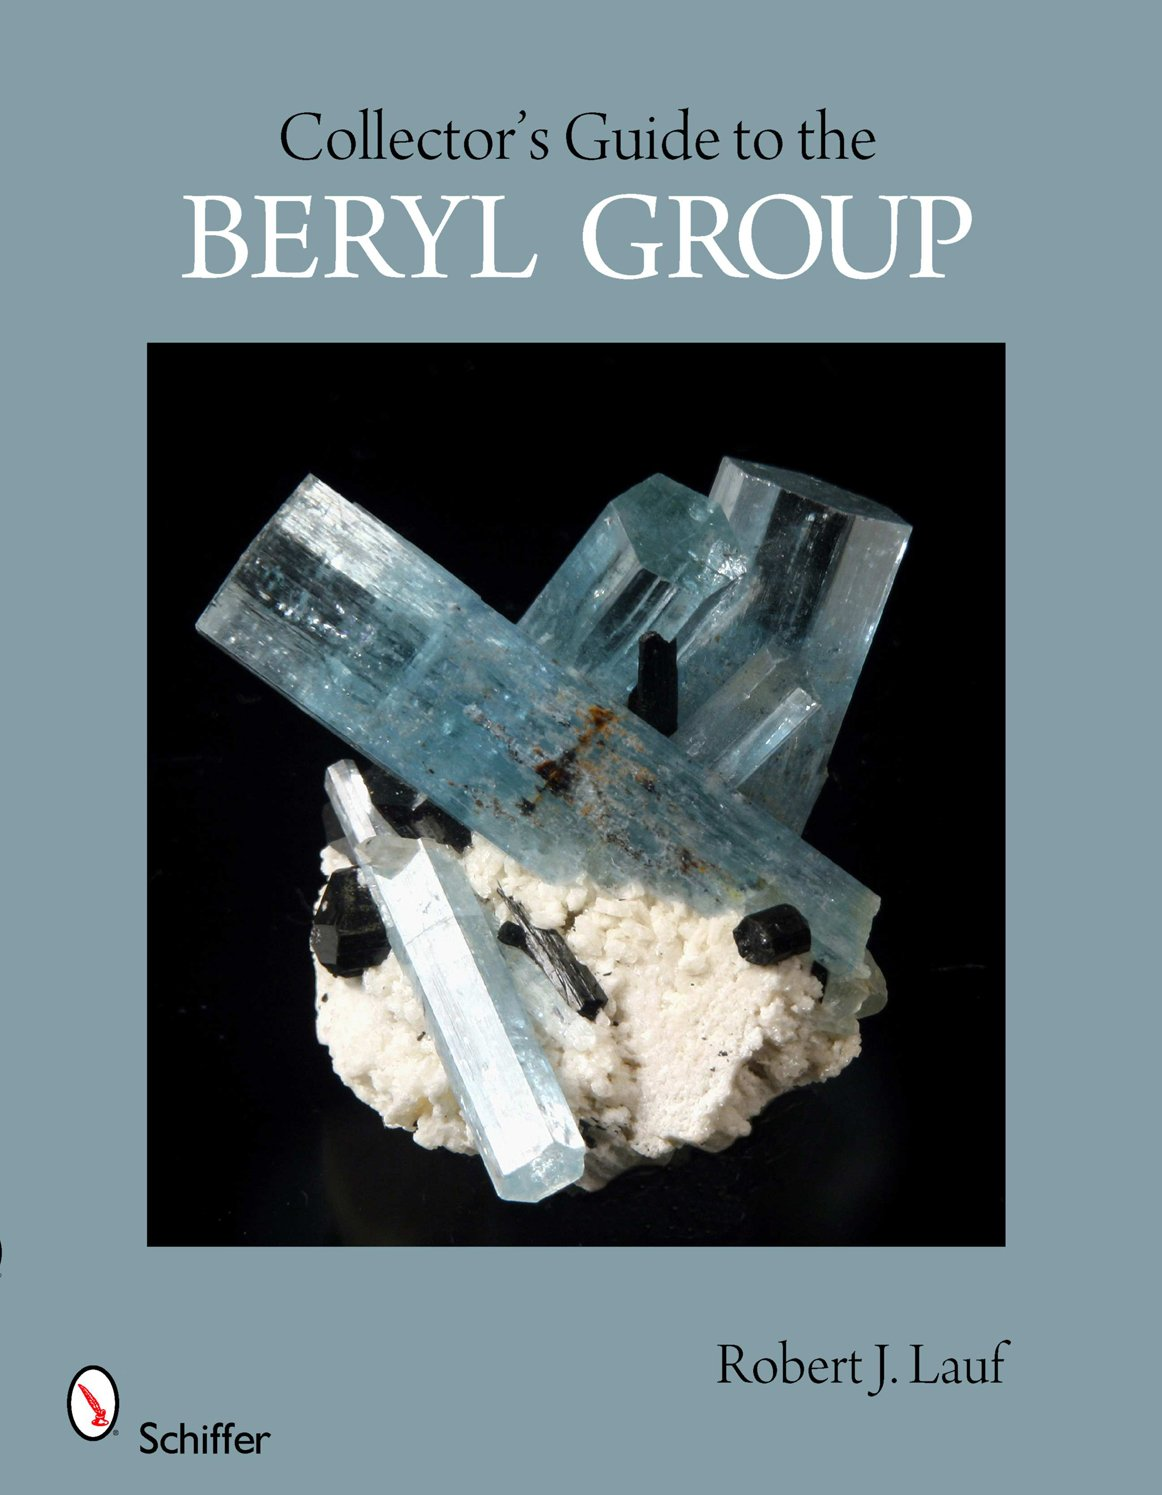 Collector's Guide to the Beryl Group: Robert J. Lauf: 9780764338786: Books  - Amazon.ca